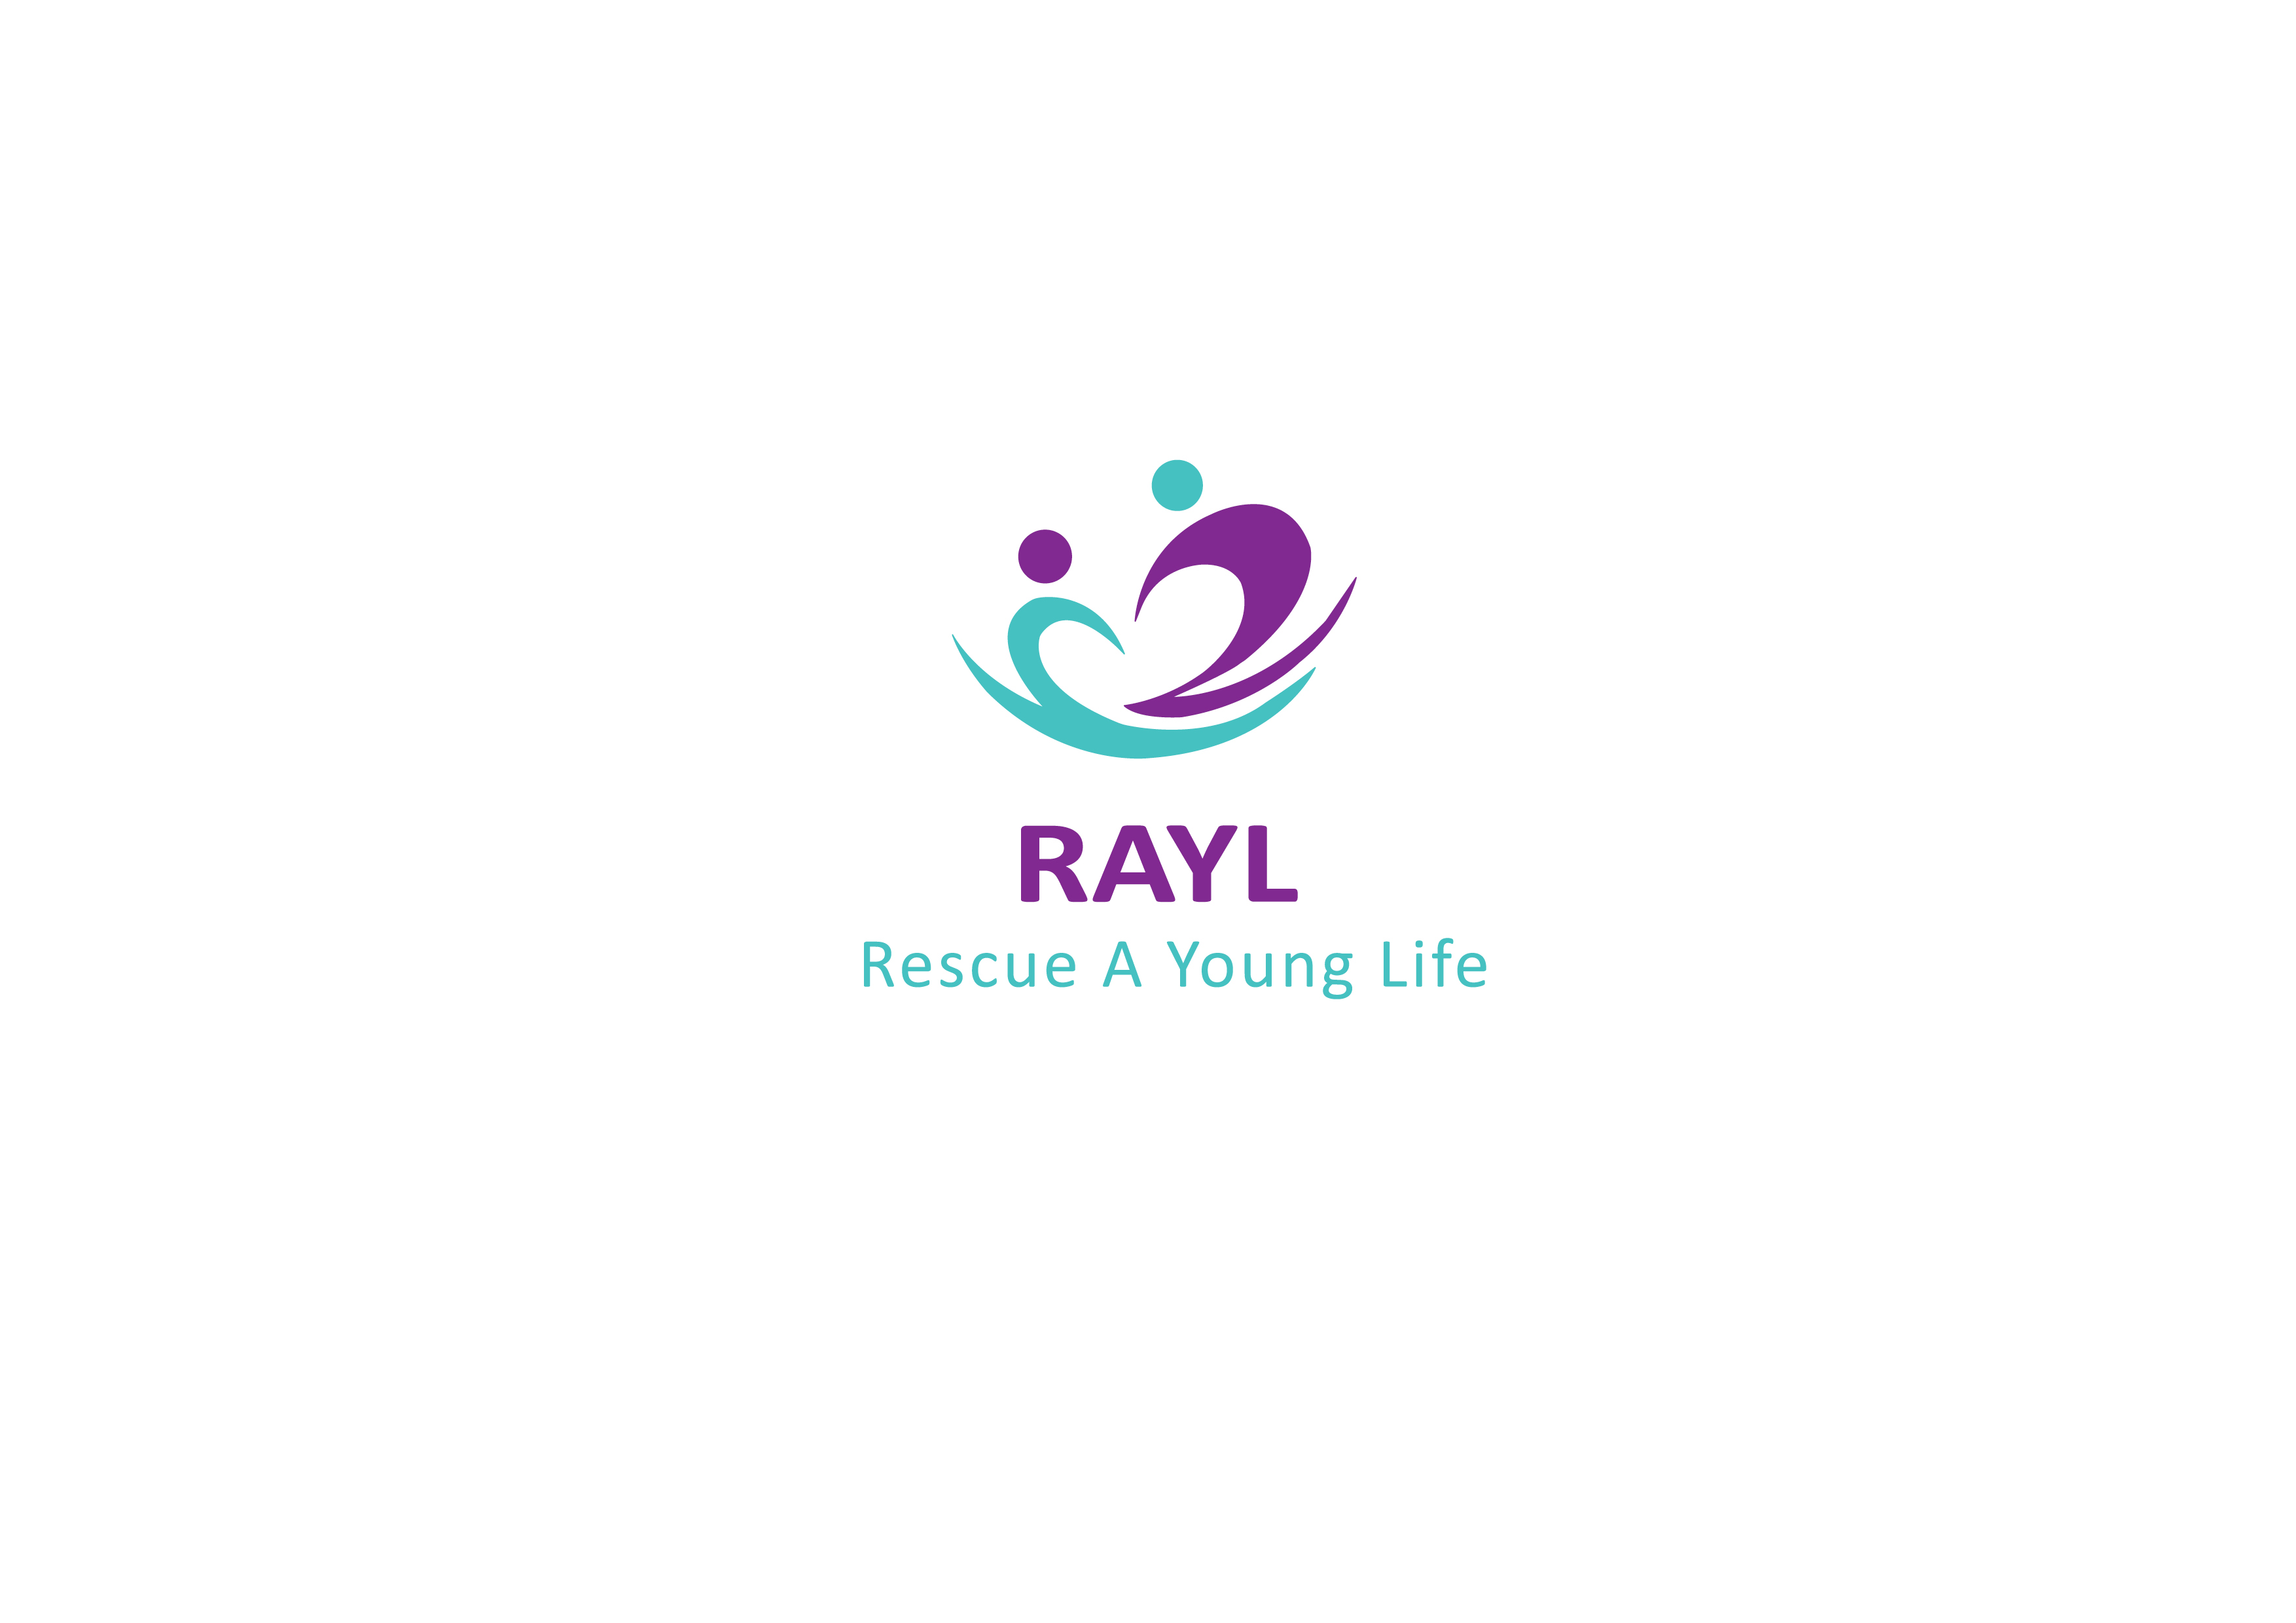 Rescue A Young Life – RAYL